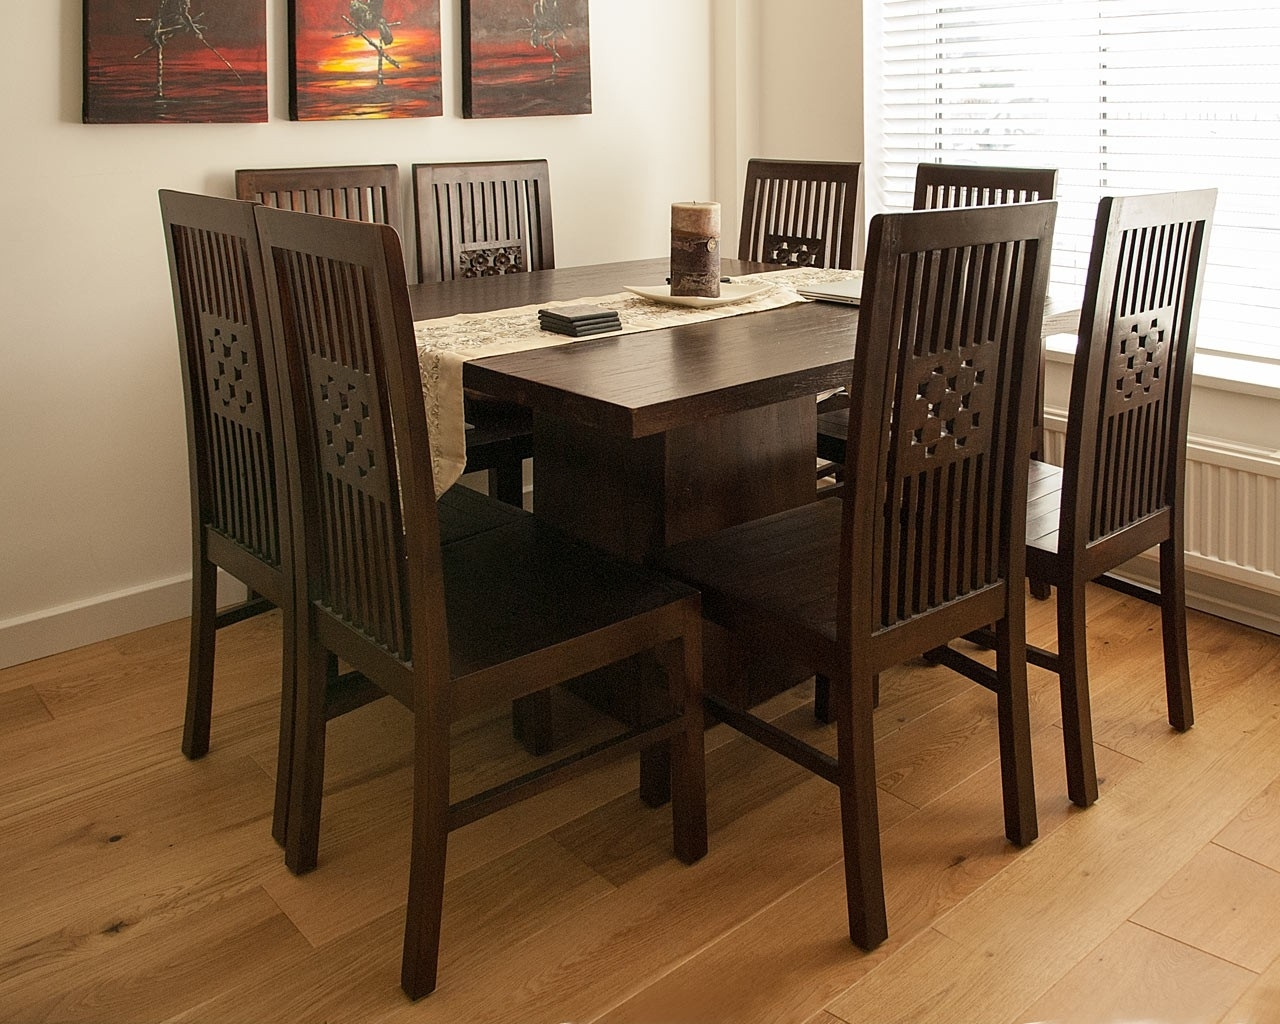 Dark Wood Dining Tables in Most Up-to-Date Dark Wood Square Table - Contemporary Teak Dining Tables